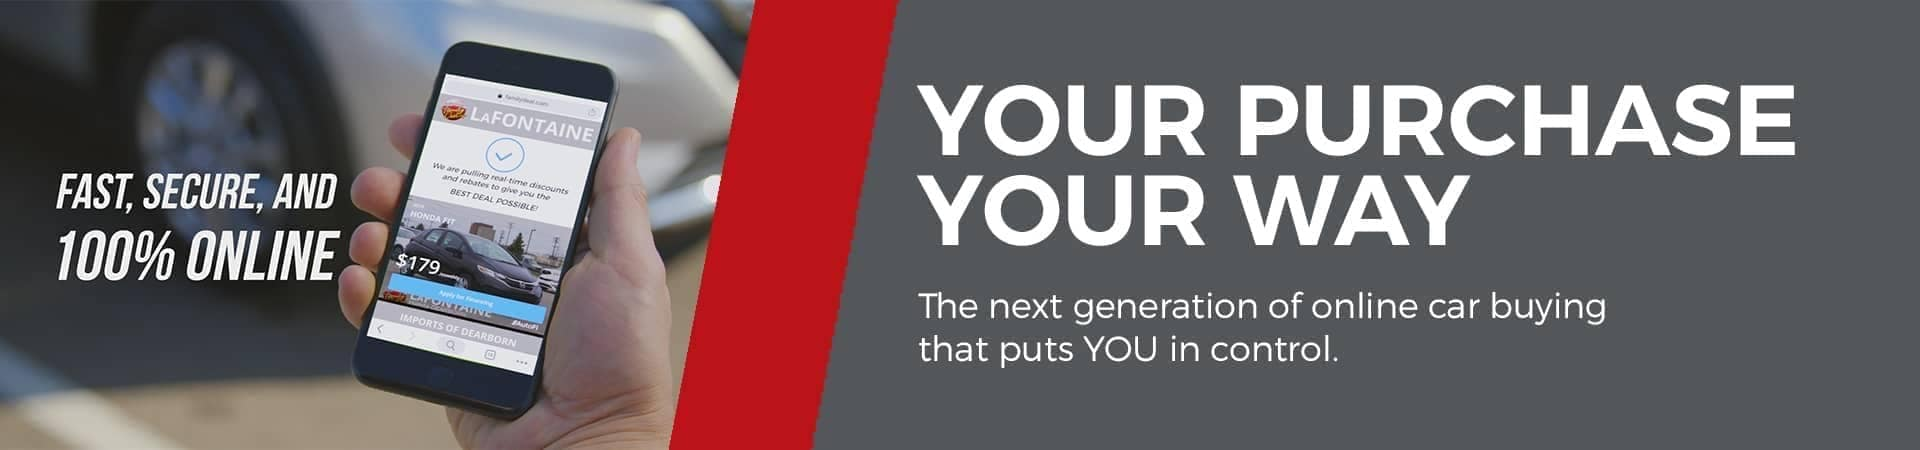 YouPurchase Your Way banner